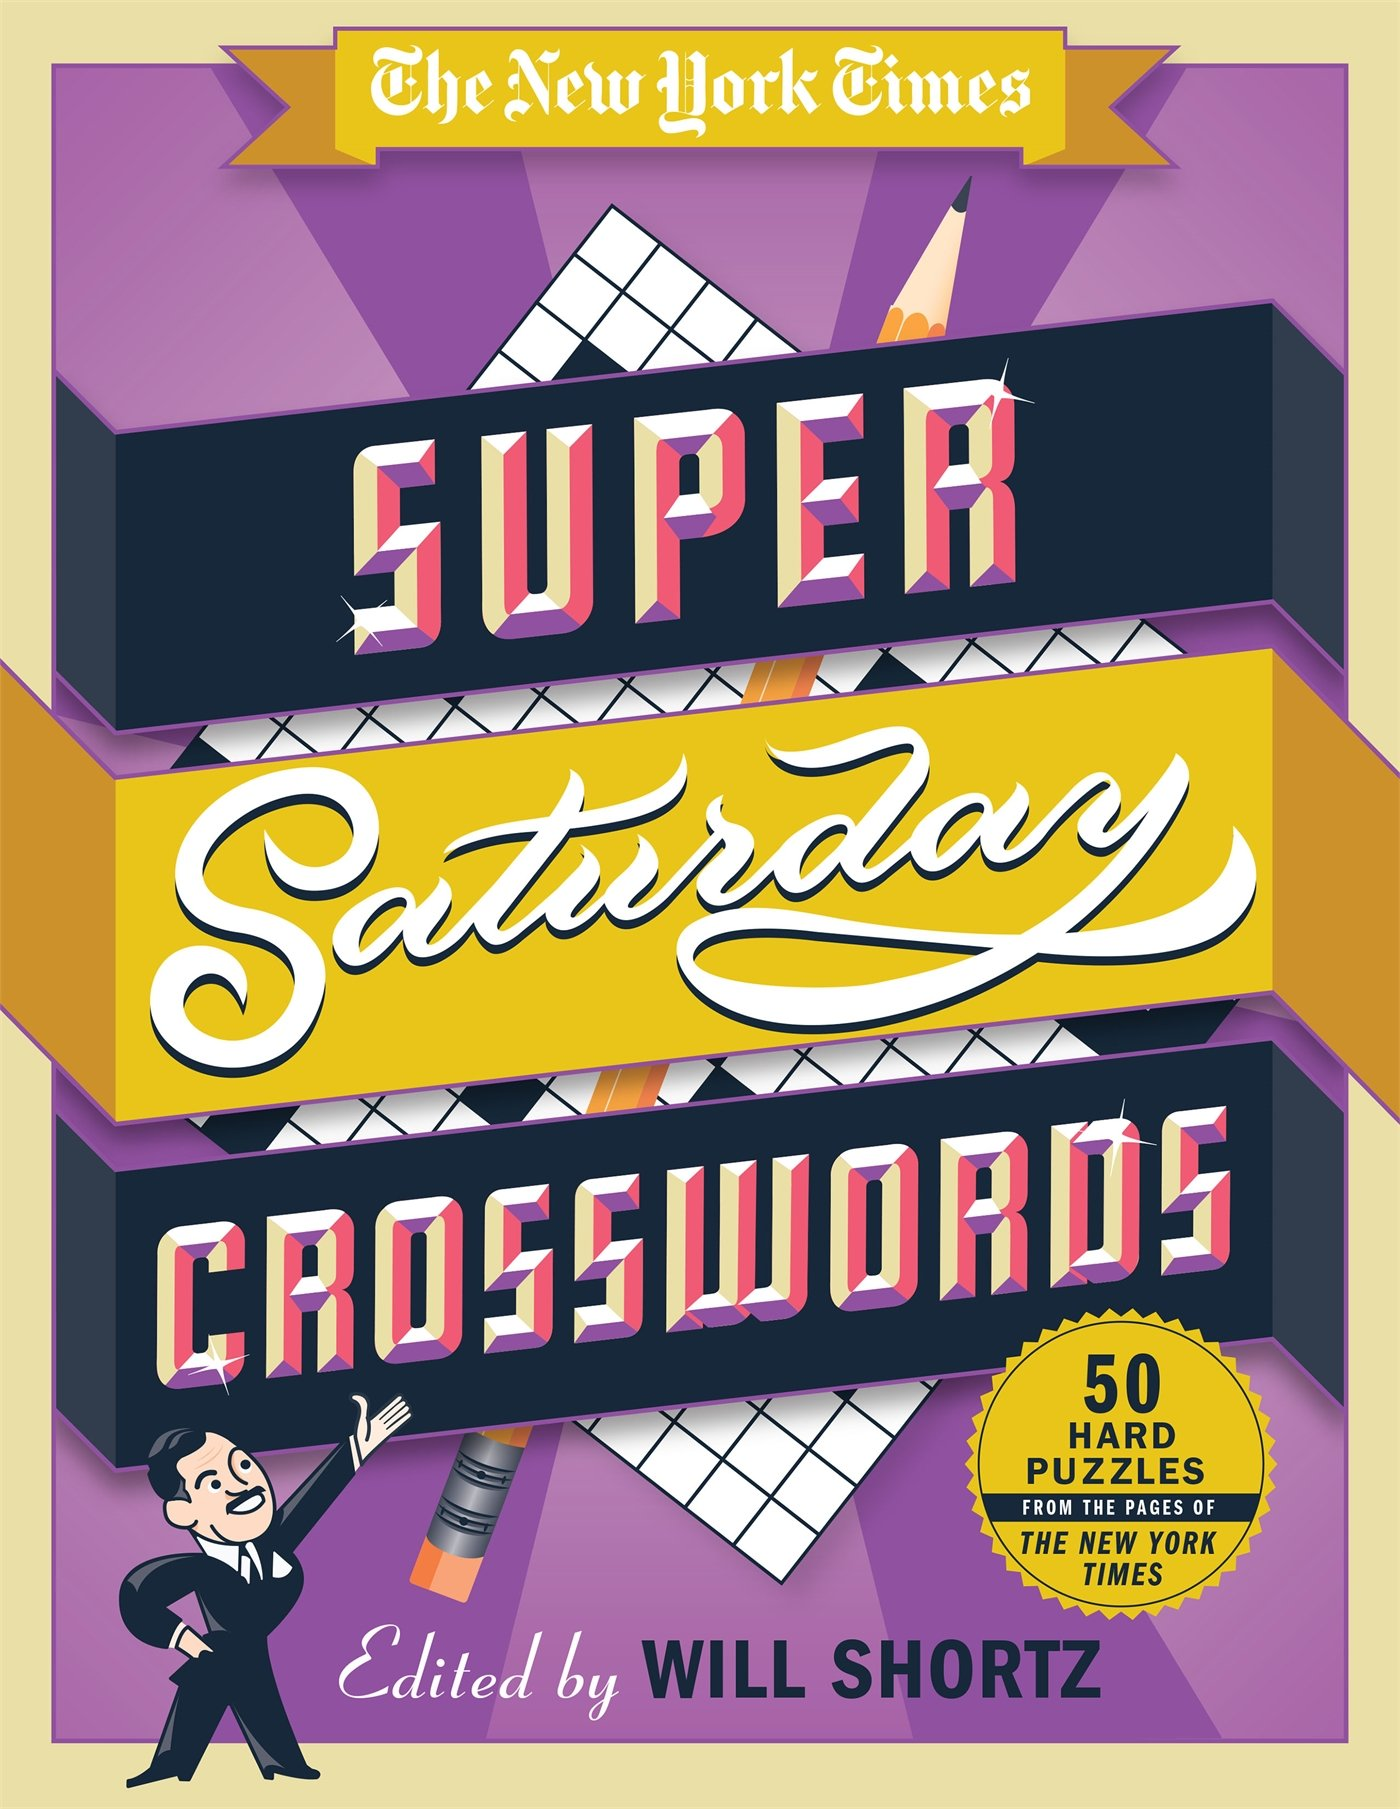 The New York Times Super Saturday Crosswords: 50 Hard Puzzles from the Pages of The New York Times pdf